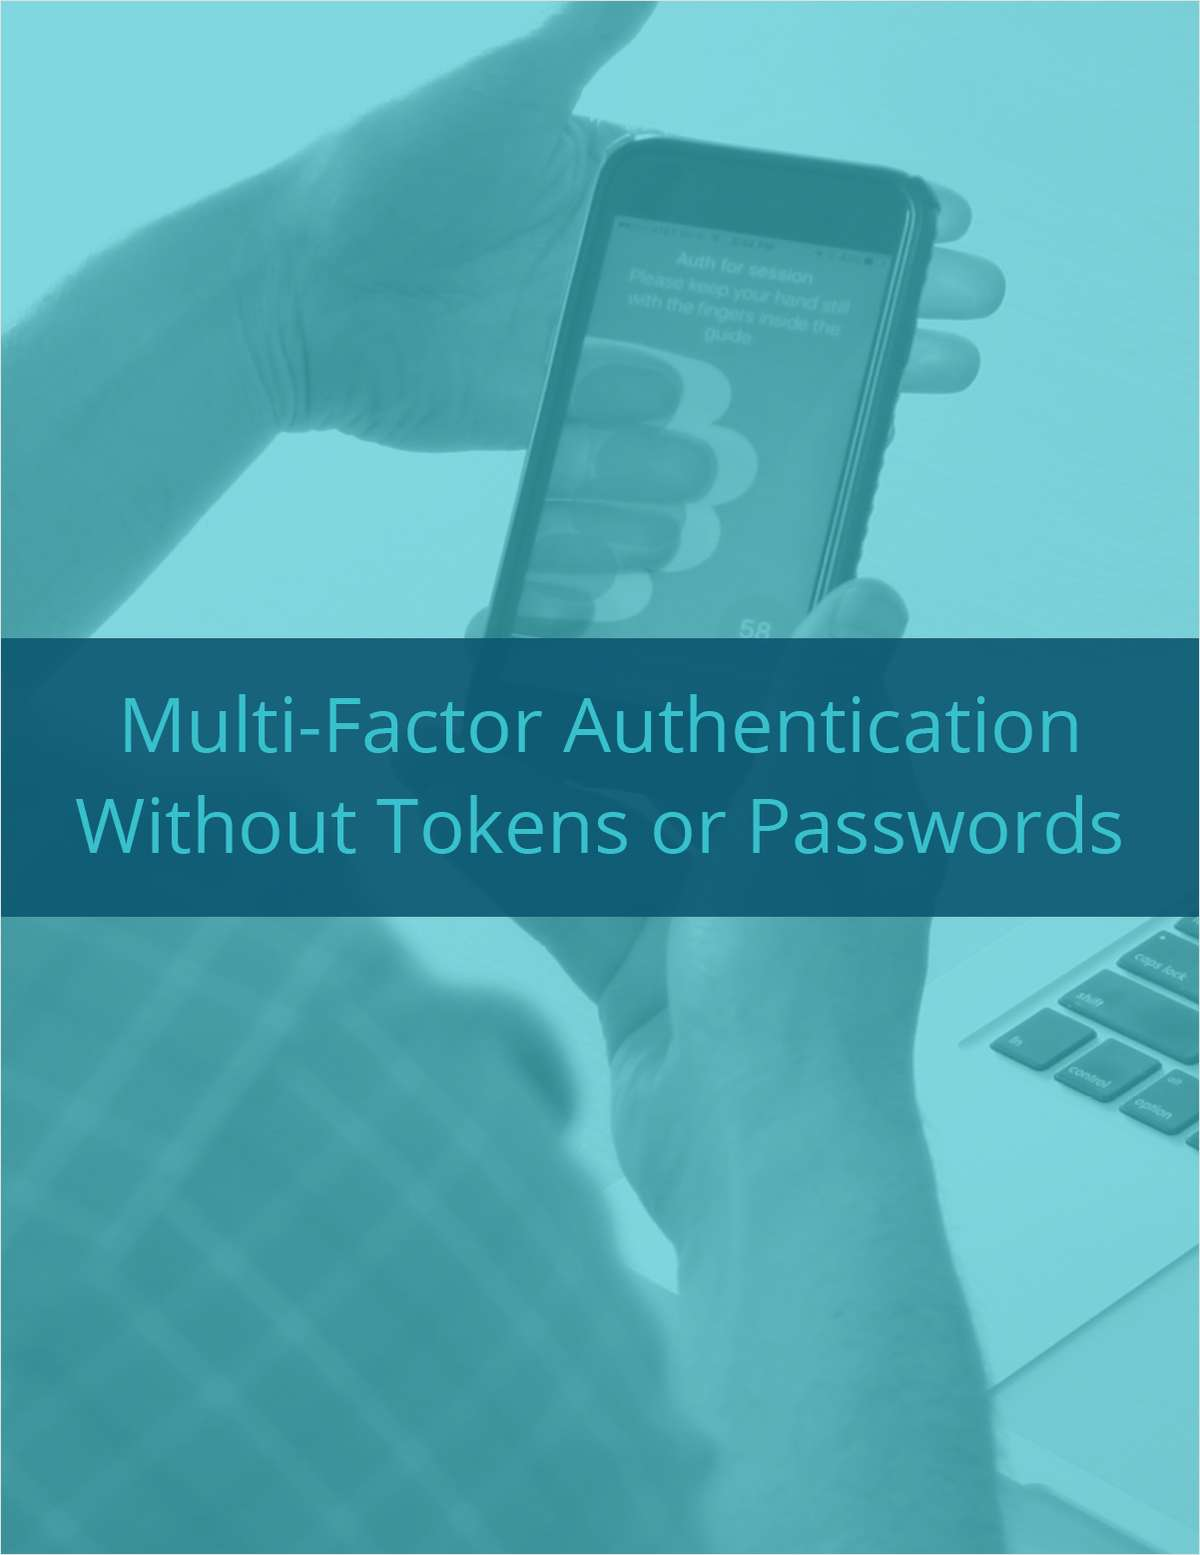 Multi-Factor Authentication Without Tokens or Passwords